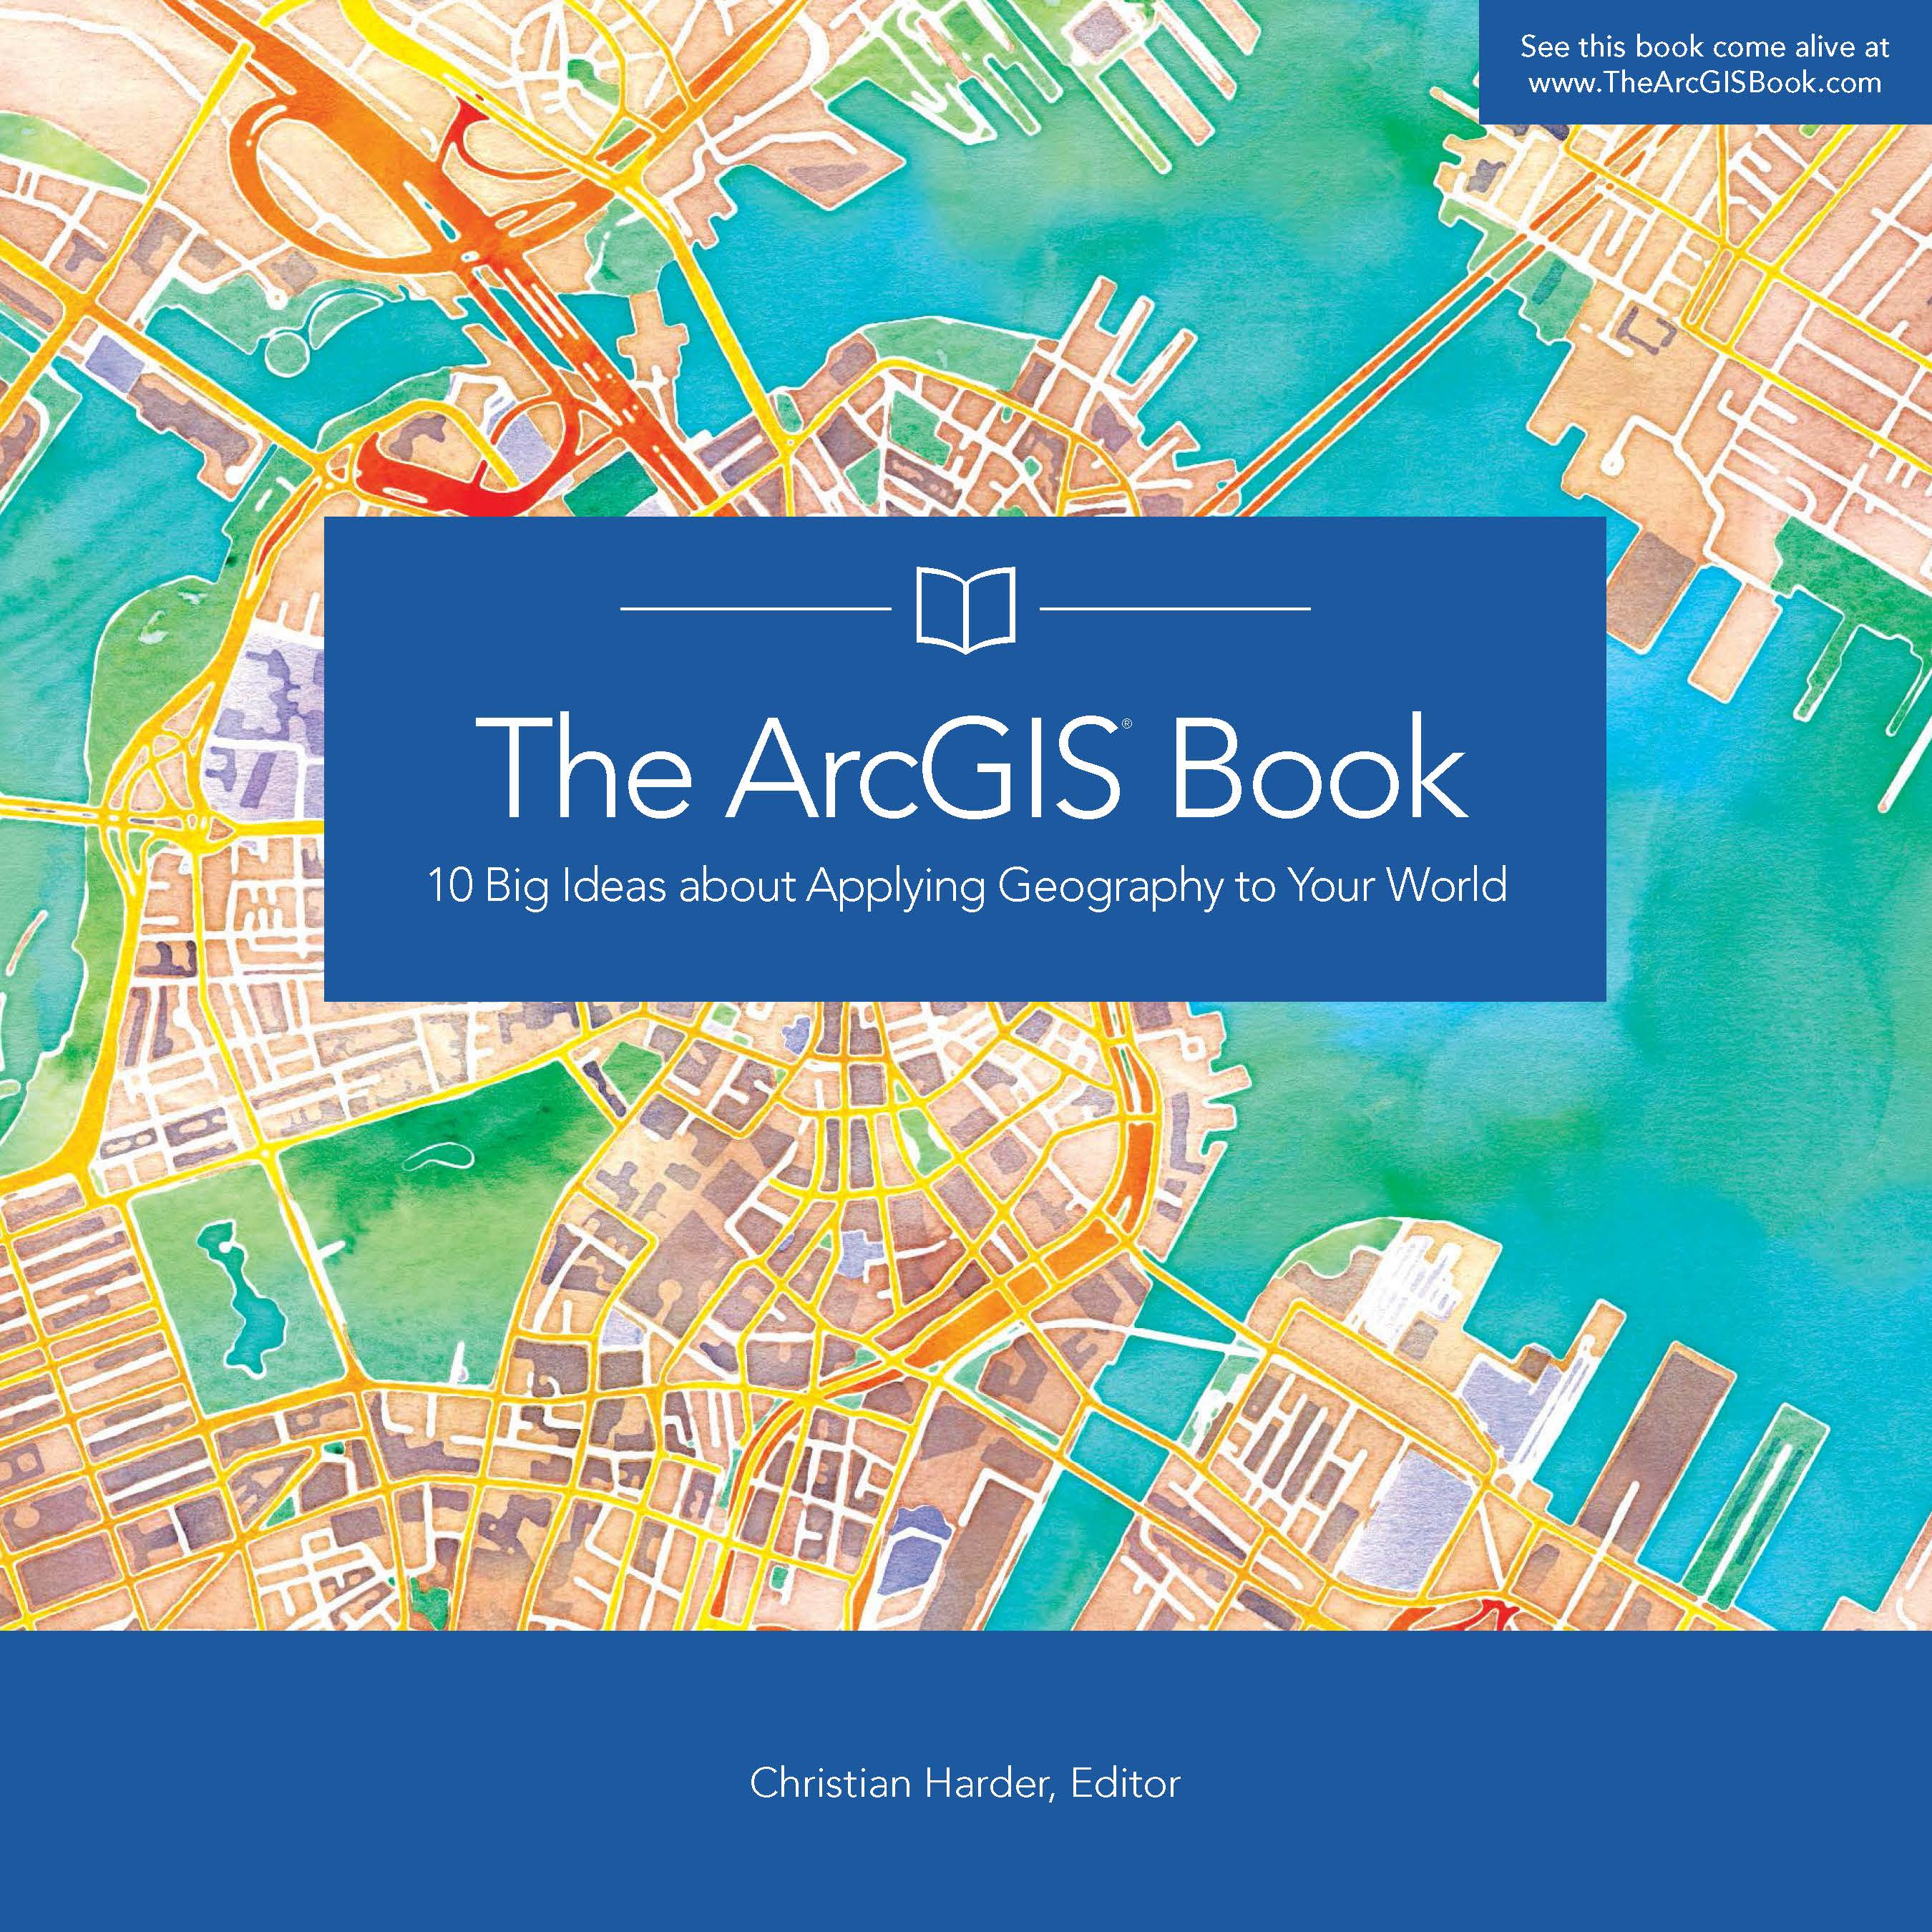 The arcgis bookten big ideas about applying geography to your world experience the arcgis book on the website or read it in print cover image courtesy of stamen design gumiabroncs Image collections